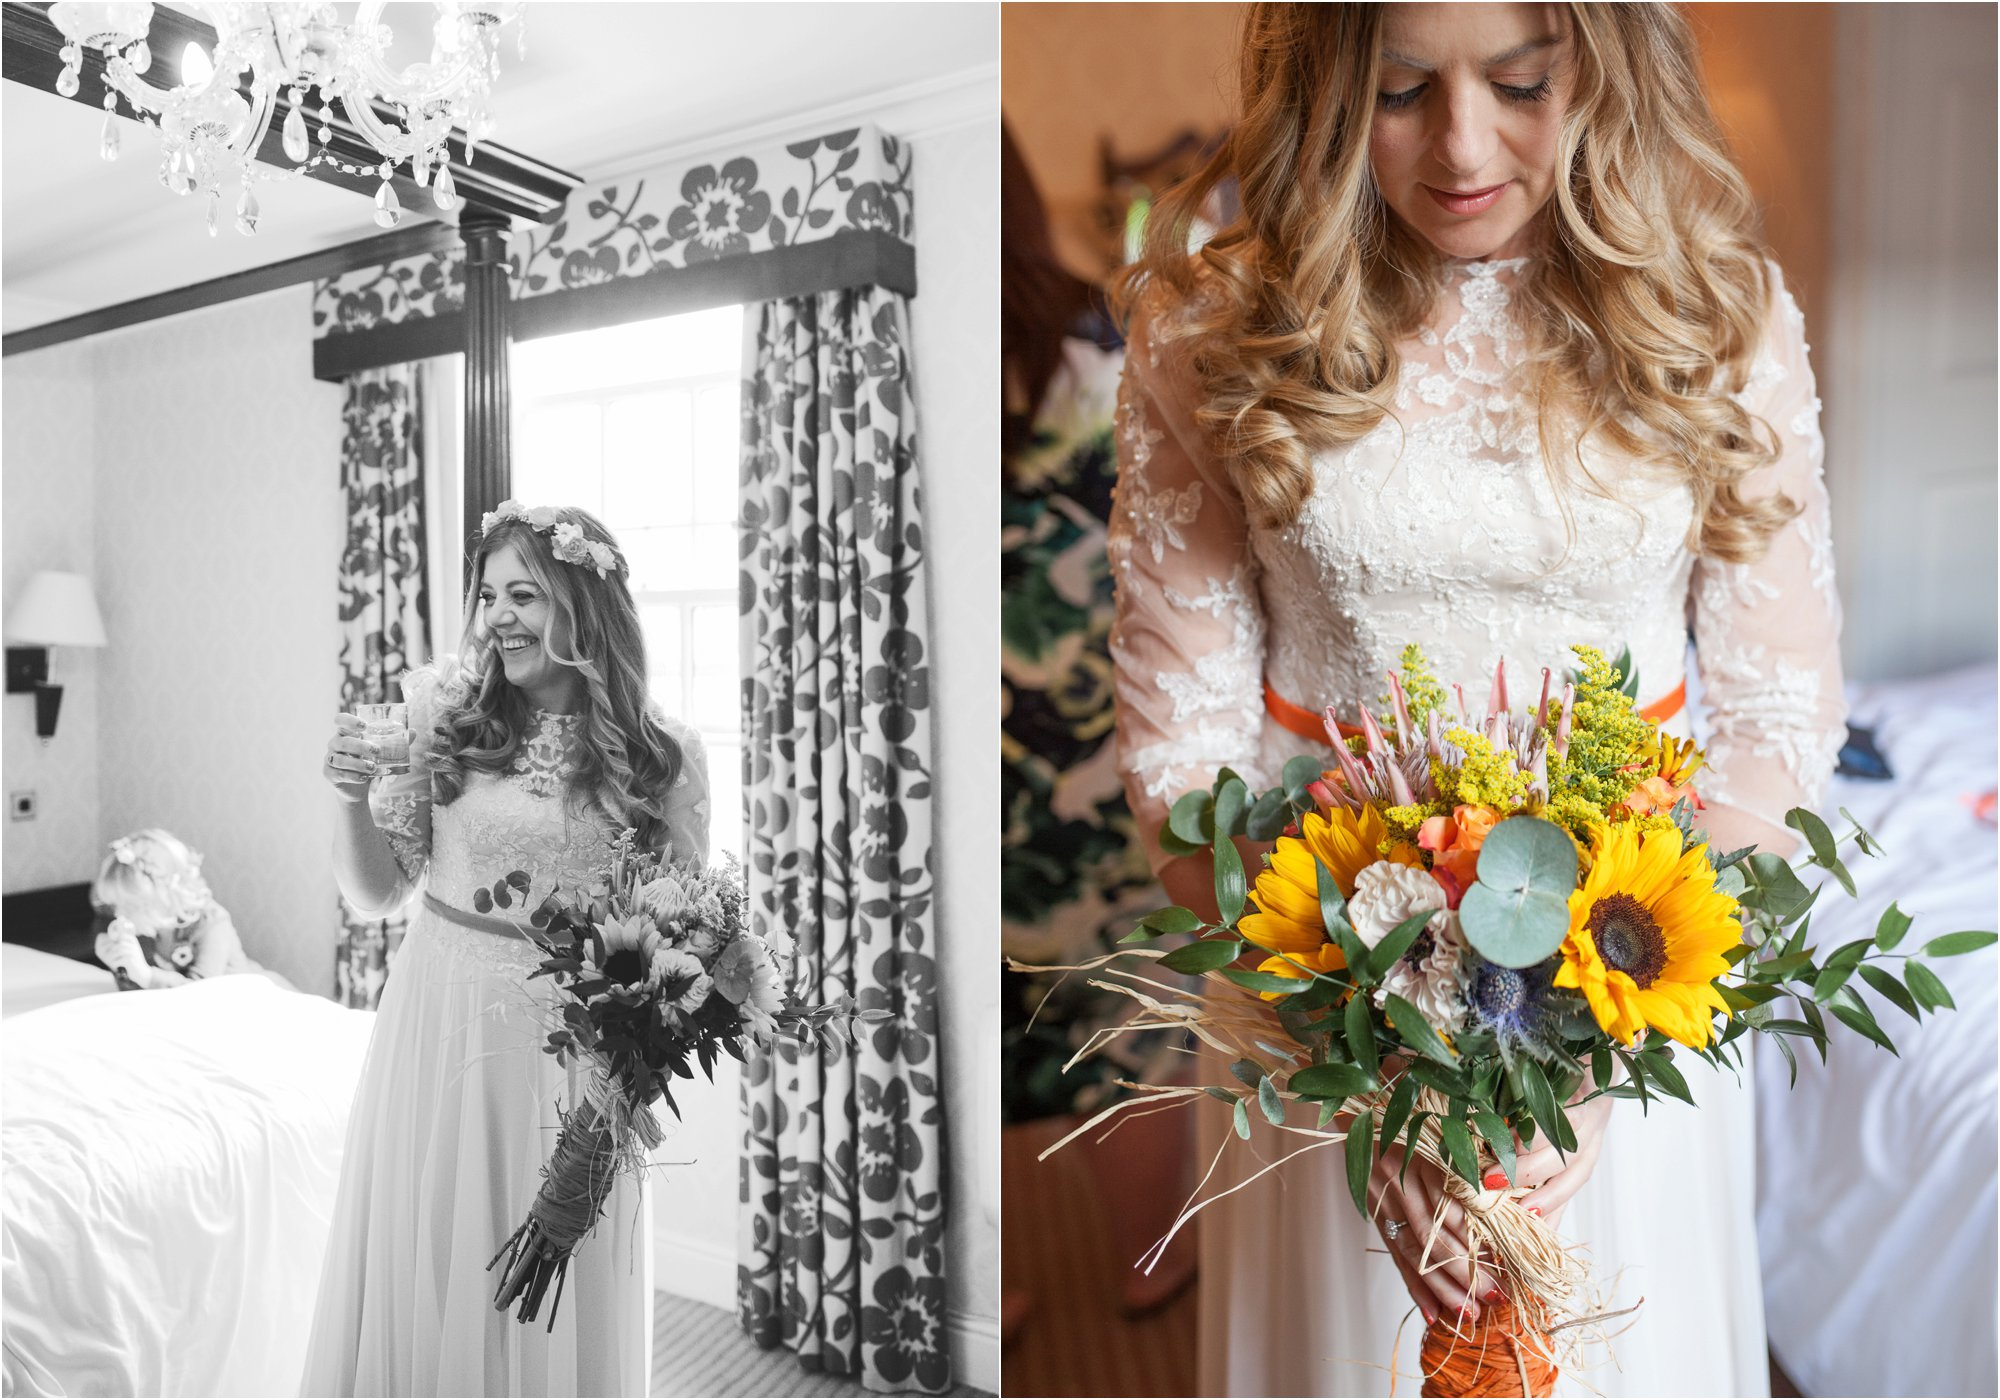 Styal_Wedding_Wilmslow_Cheshire_Autumn_Colourful_photography_0064.jpg